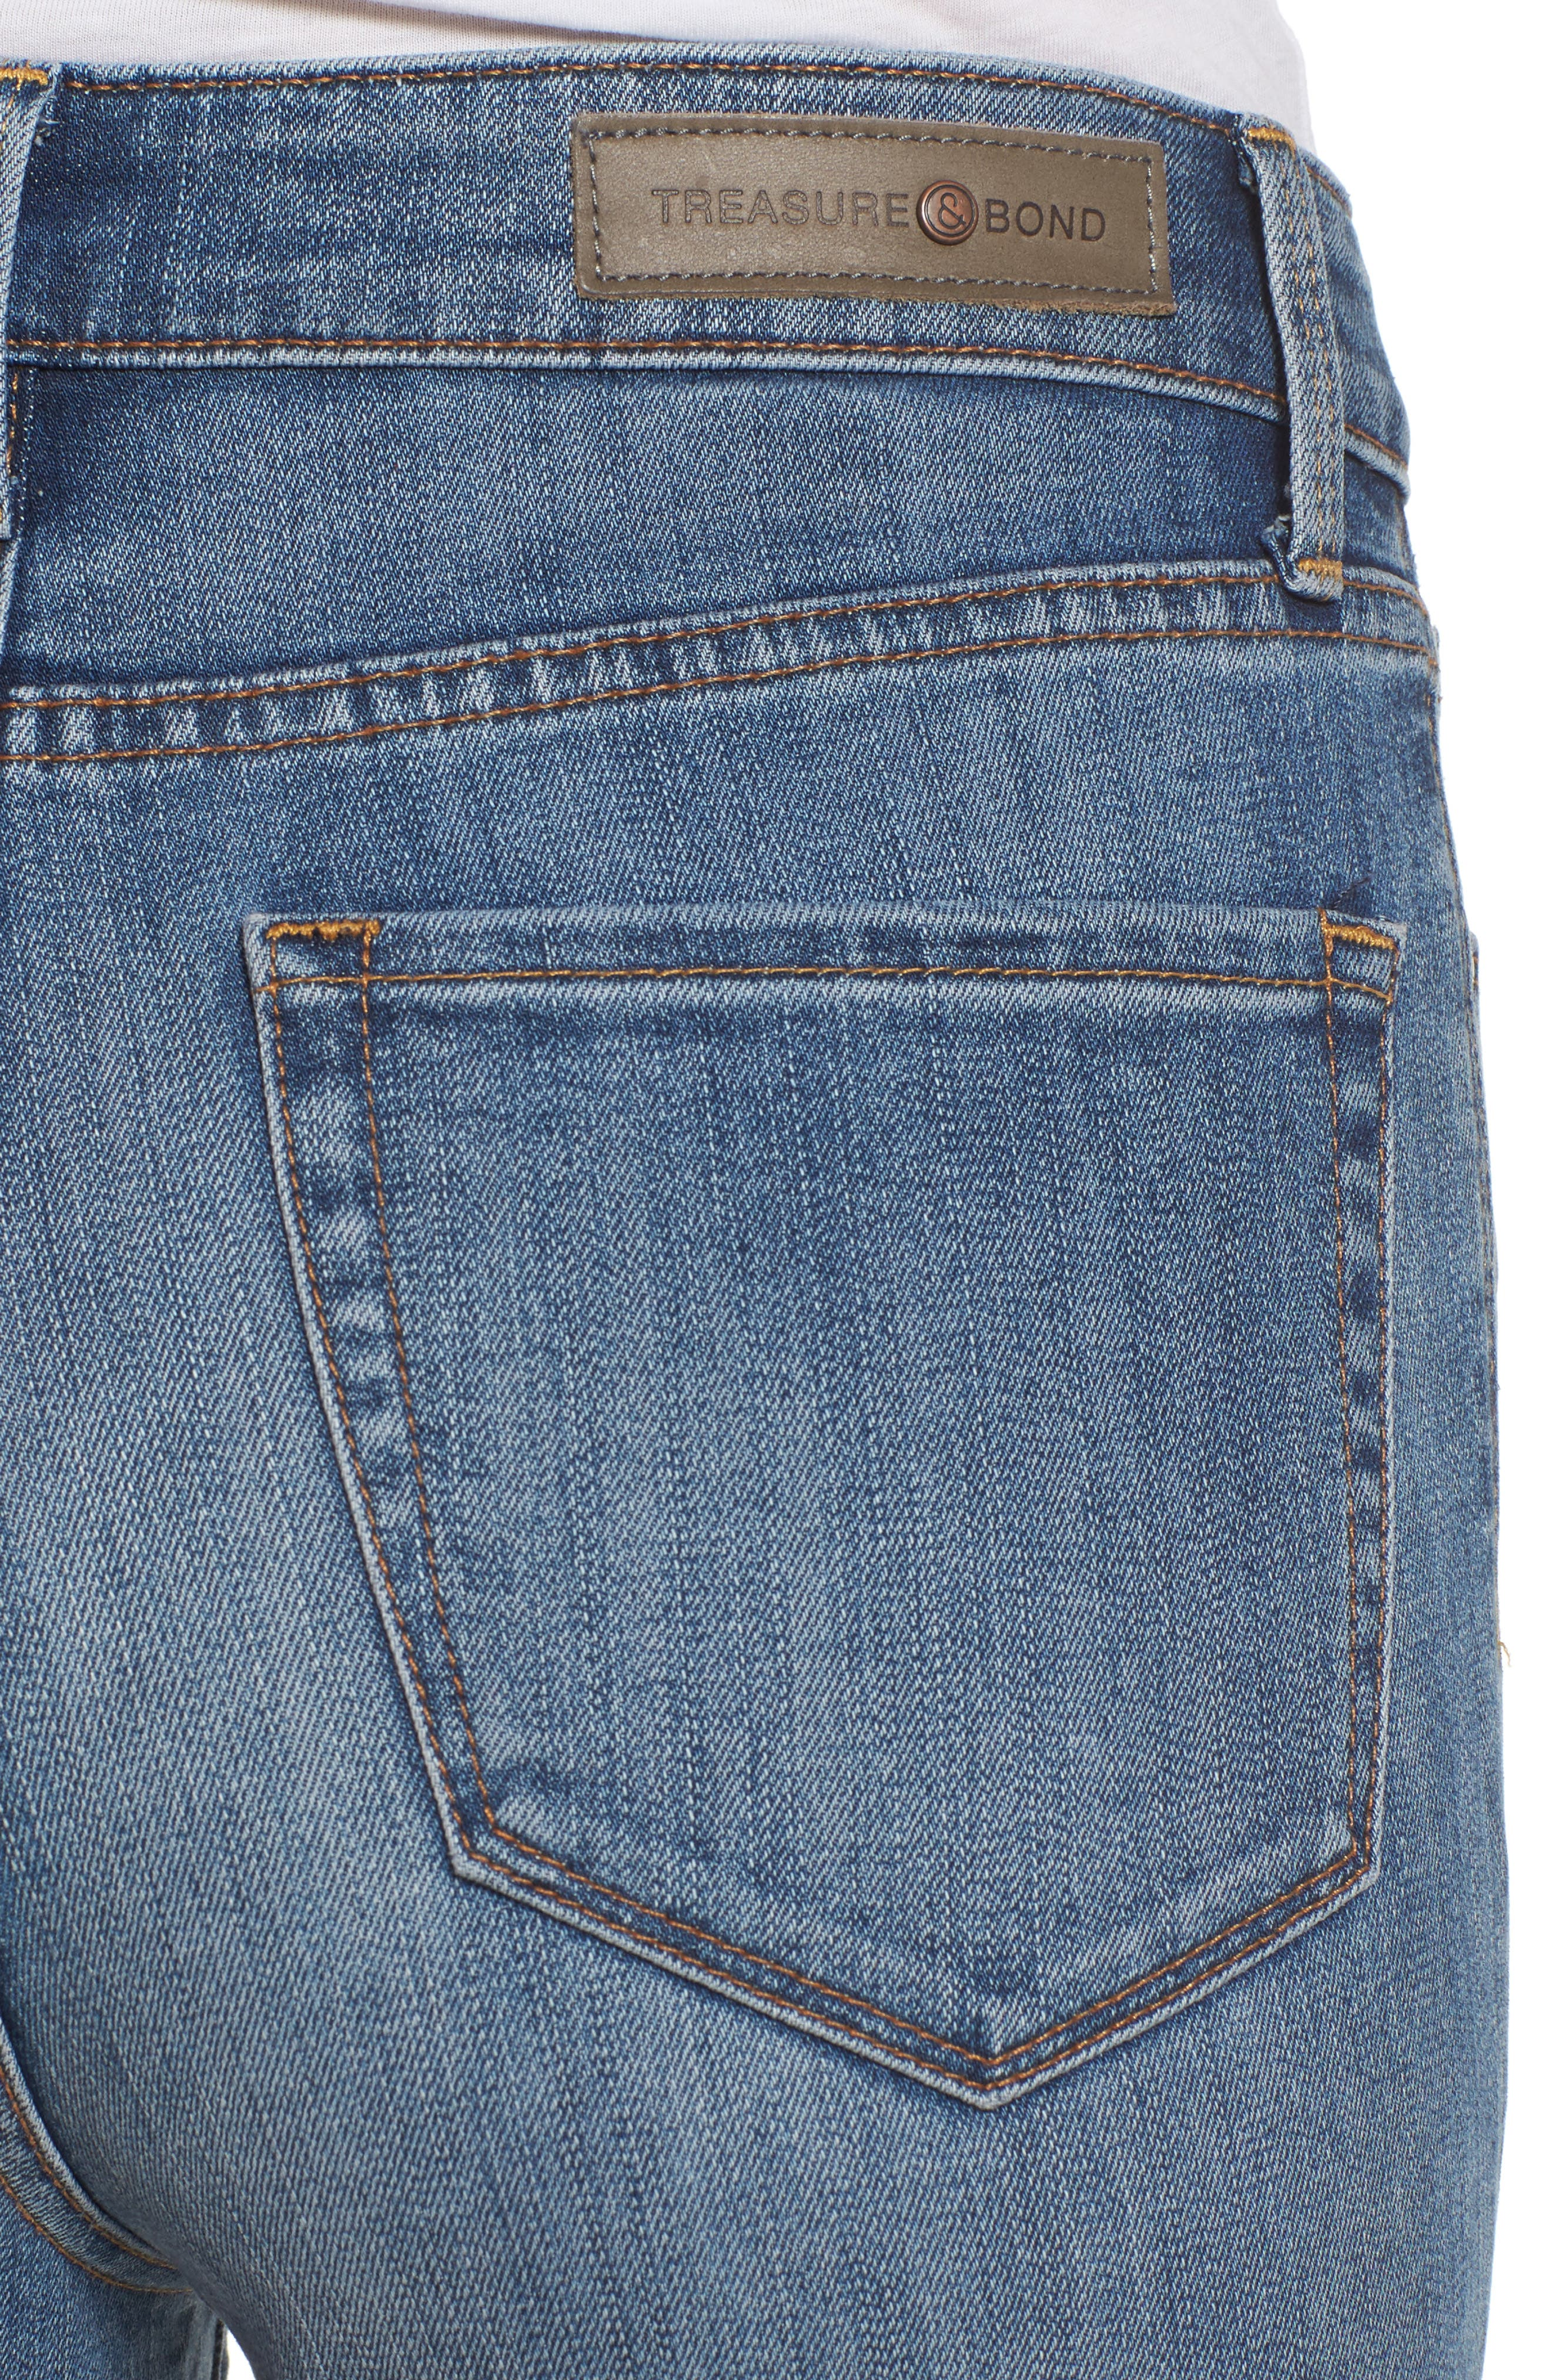 Charity High Waist Skinny Ankle Jeans,                             Alternate thumbnail 4, color,                             400